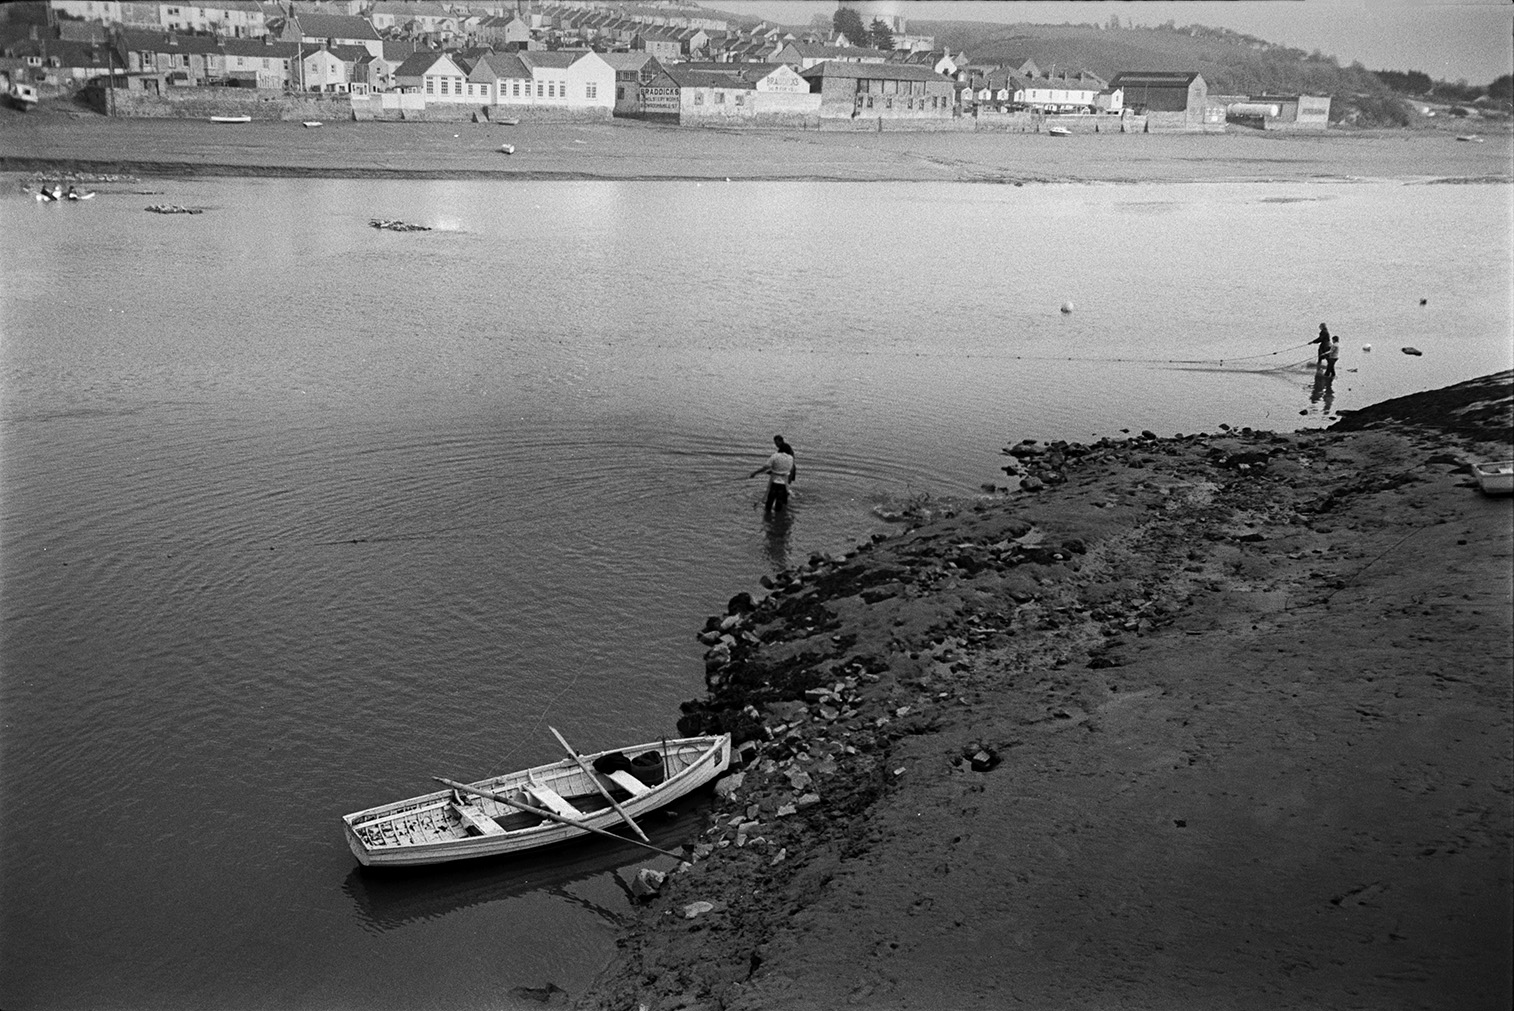 People pulling in salmon nets on the River Torridge at Bideford. A rowing boat is moored by the river bank. Houses in the town are visible opposite the river.